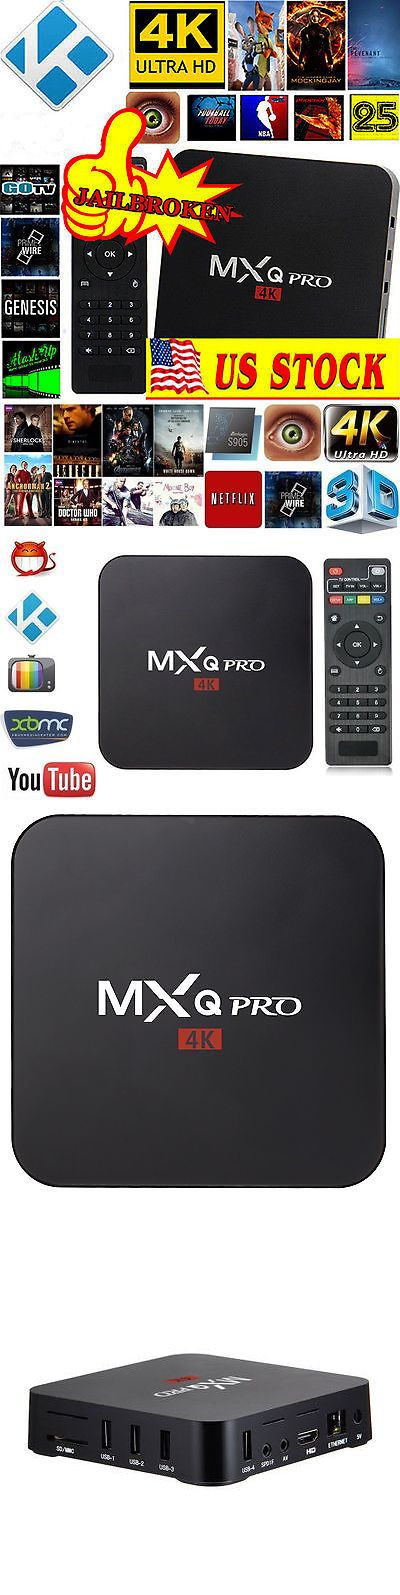 Cable TV Boxes: Mxq Pro 4K S905 Smart Tv Box Android 5.1 Quad Core Wifi 8G Free Keyboard -> BUY IT NOW ONLY: $50.34 on eBay!